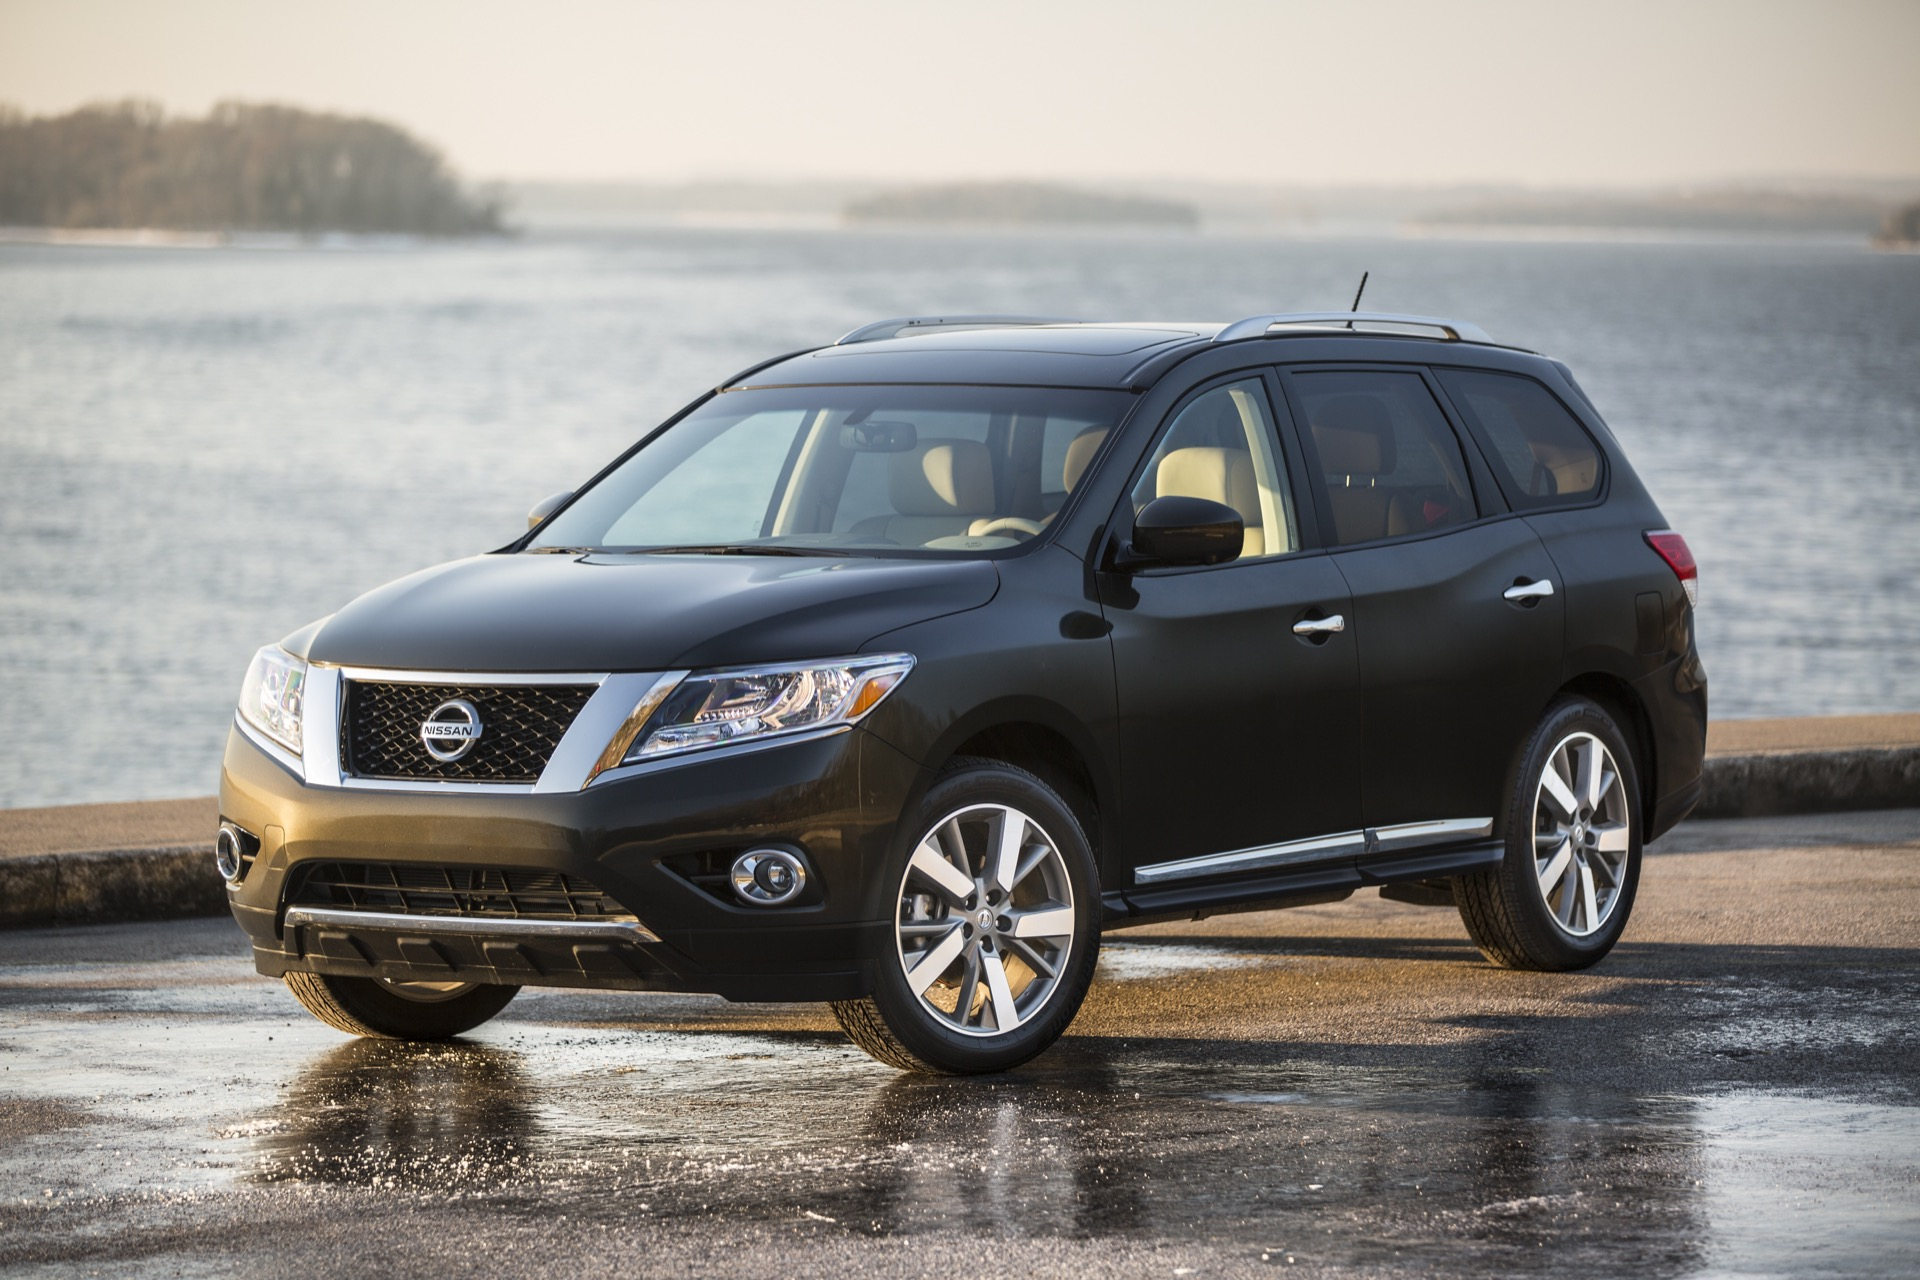 2016 nissan pathfinder gas mileage the car connection. Black Bedroom Furniture Sets. Home Design Ideas